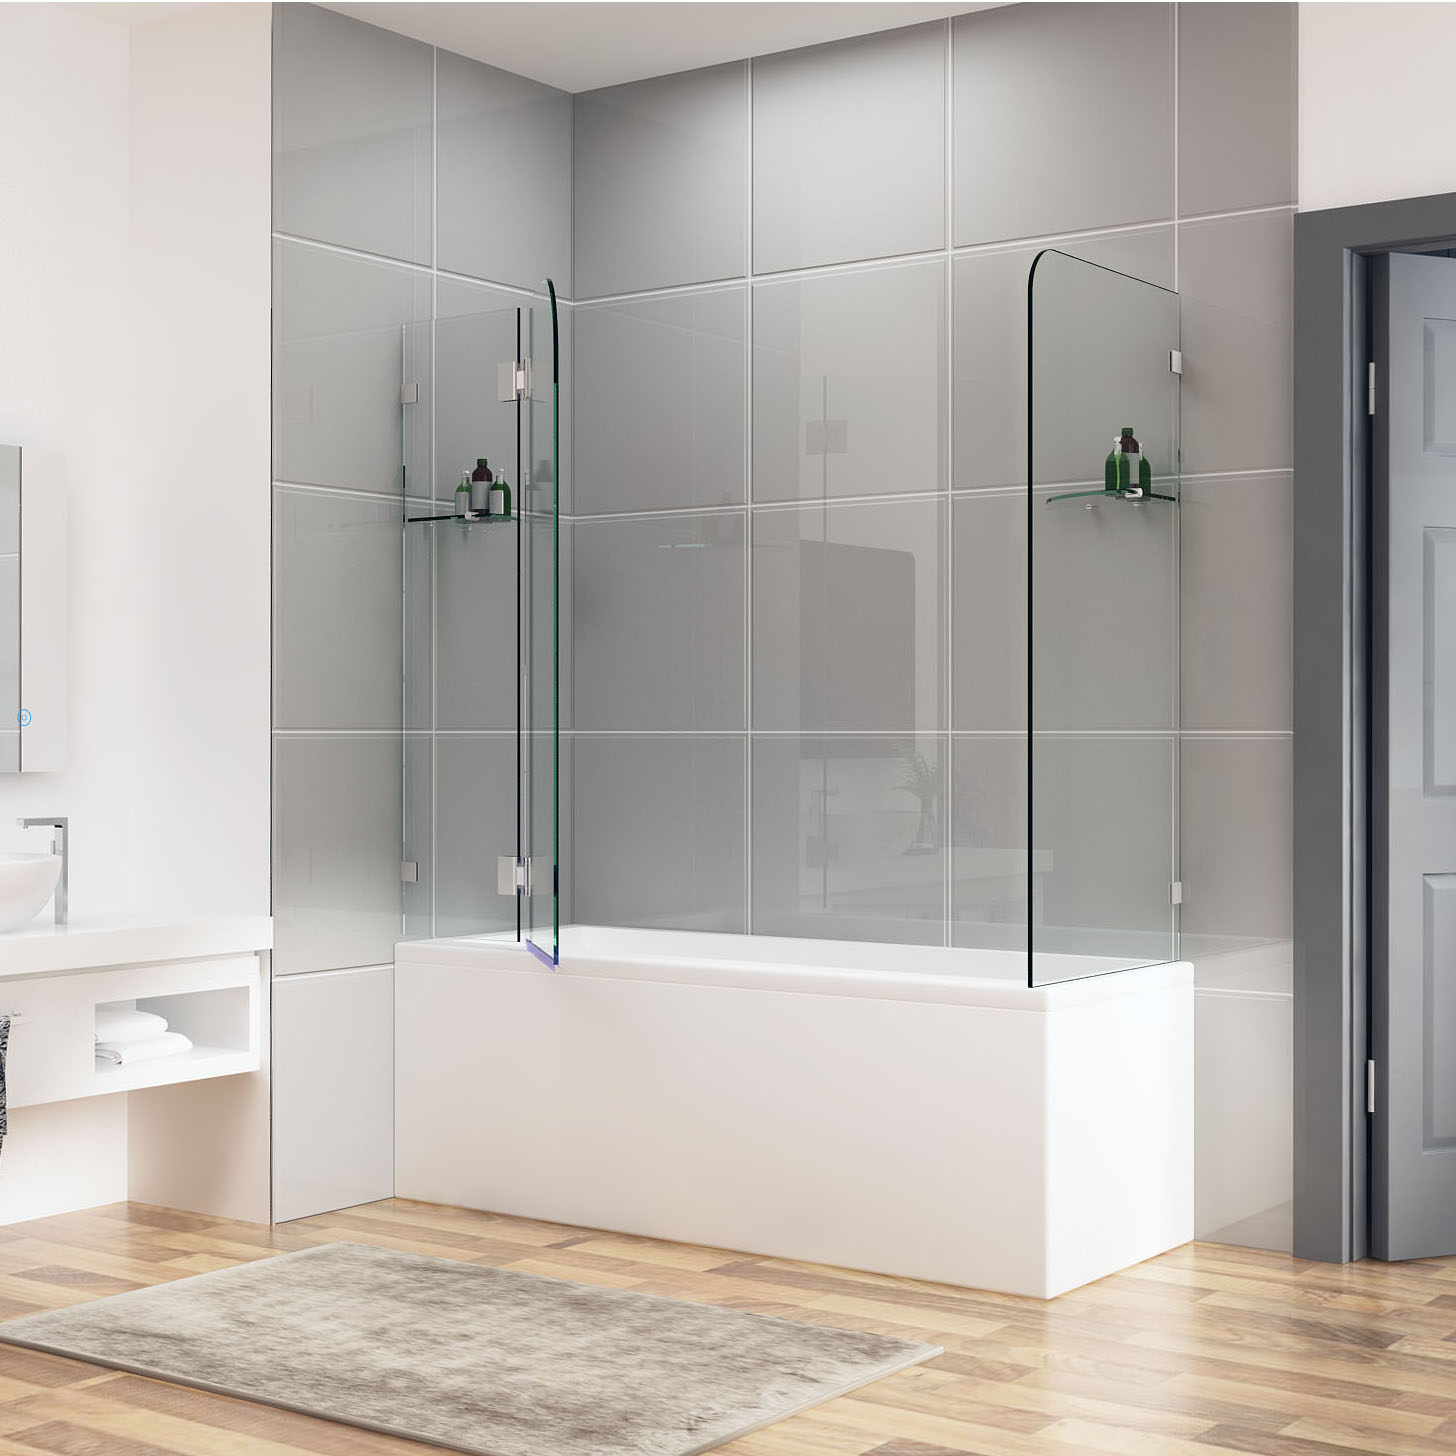 900 1000x700 800 900 Frameless Over Bath Shower Screen